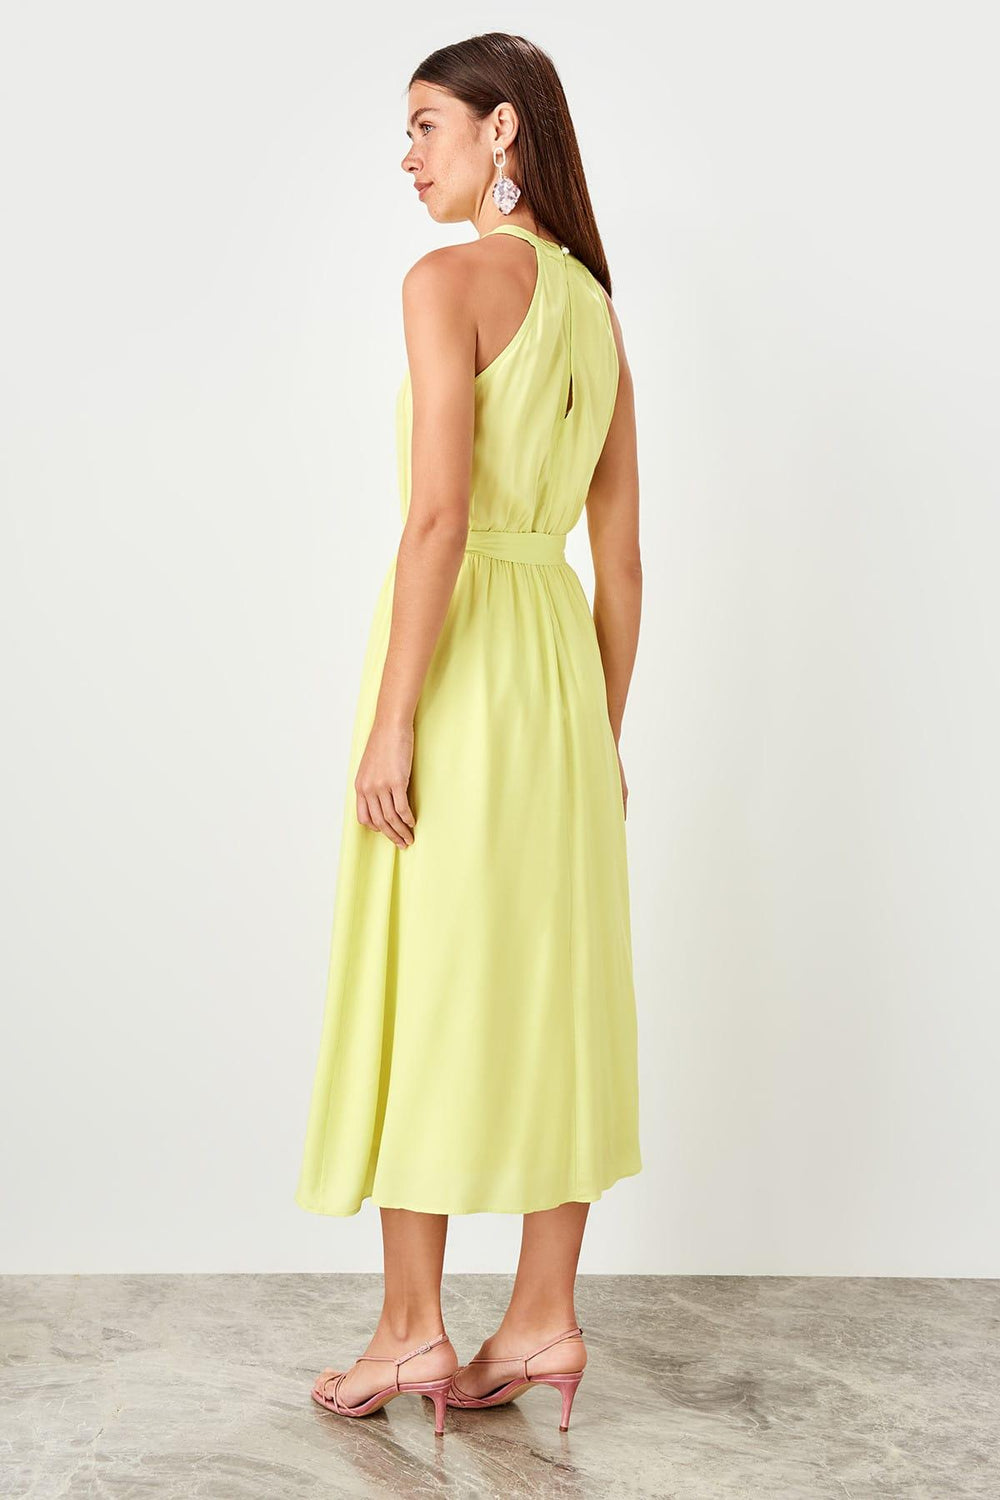 Yellow Gusset Midi Dress - Top Maxy